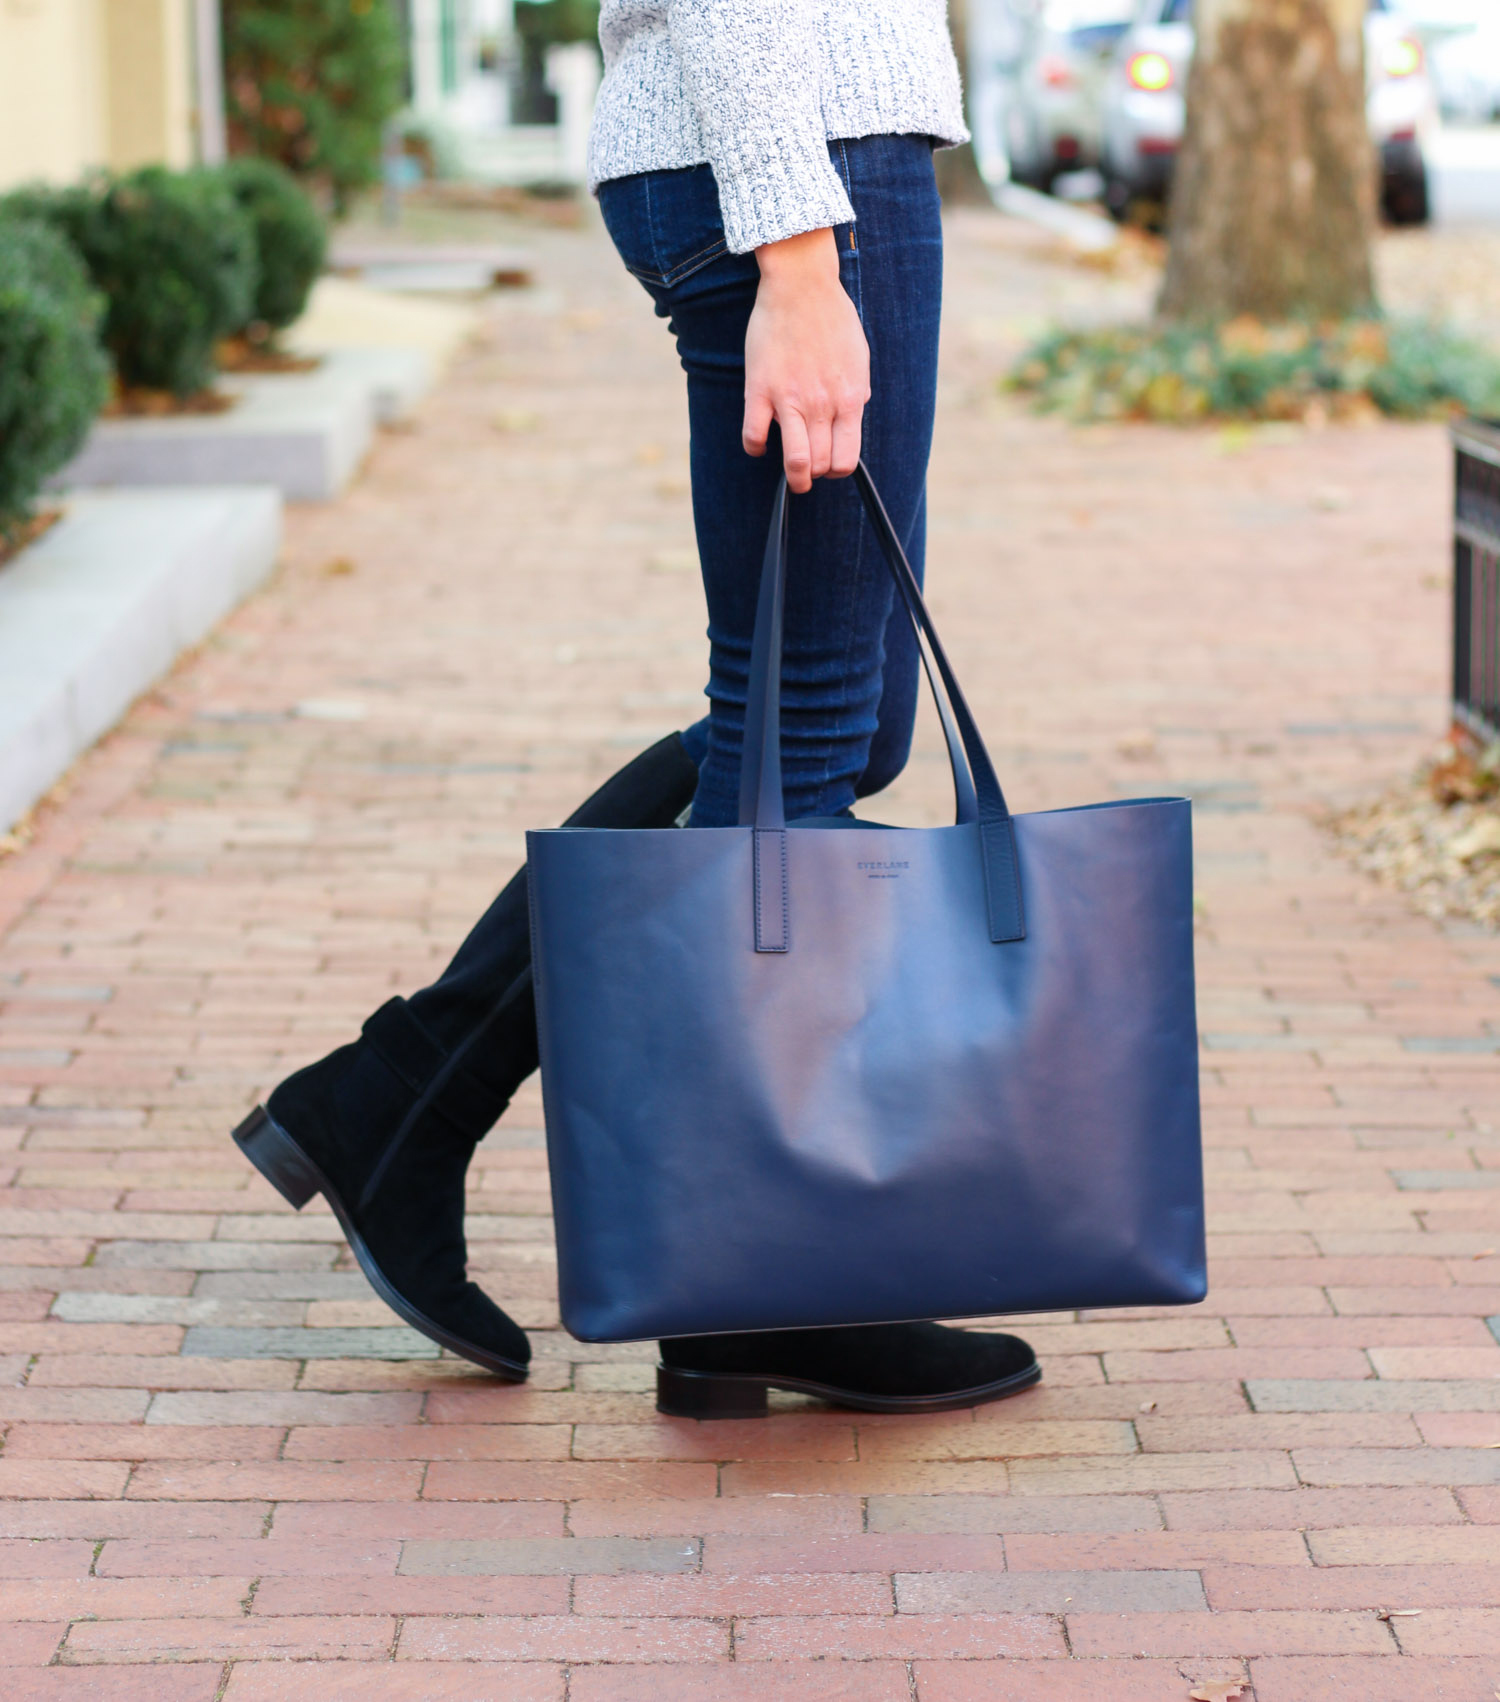 Everlane leather tote - Aquatalia Giada Boots review featured by popular Washington DC style blogger, Monica Dutia